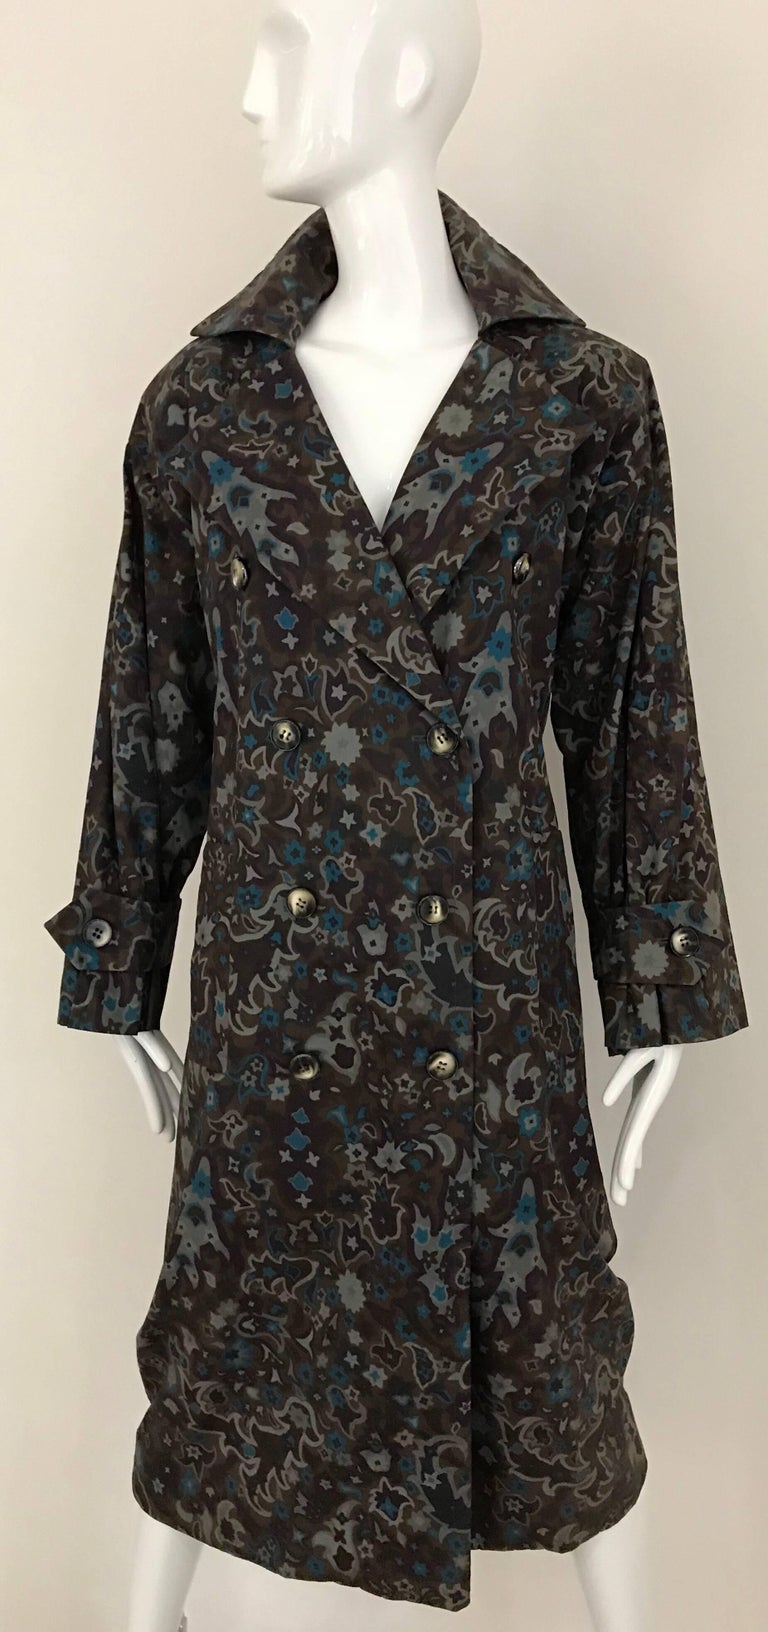 1970s Saint Laurent Brown, Teal and Grey Paisley Print vintage Trench Coat For Sale 3